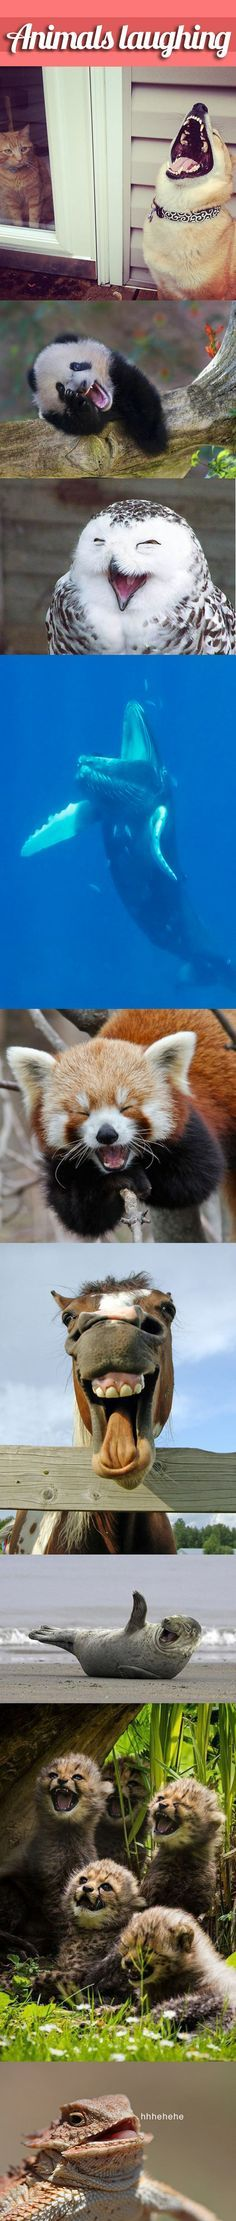 Animals laughing from the Metapicture. Enjoy RUSHWORLD boards, MOOD BUSTERS FEEL BETTER NOW, ART A QUIRKY SPOT TO FIND YOURSELF and UNPREDICTABLE WOMEN HAUTE COUTURE.  Follow RUSHWORLD on Pintrest!  New content daily, always something you'll love!